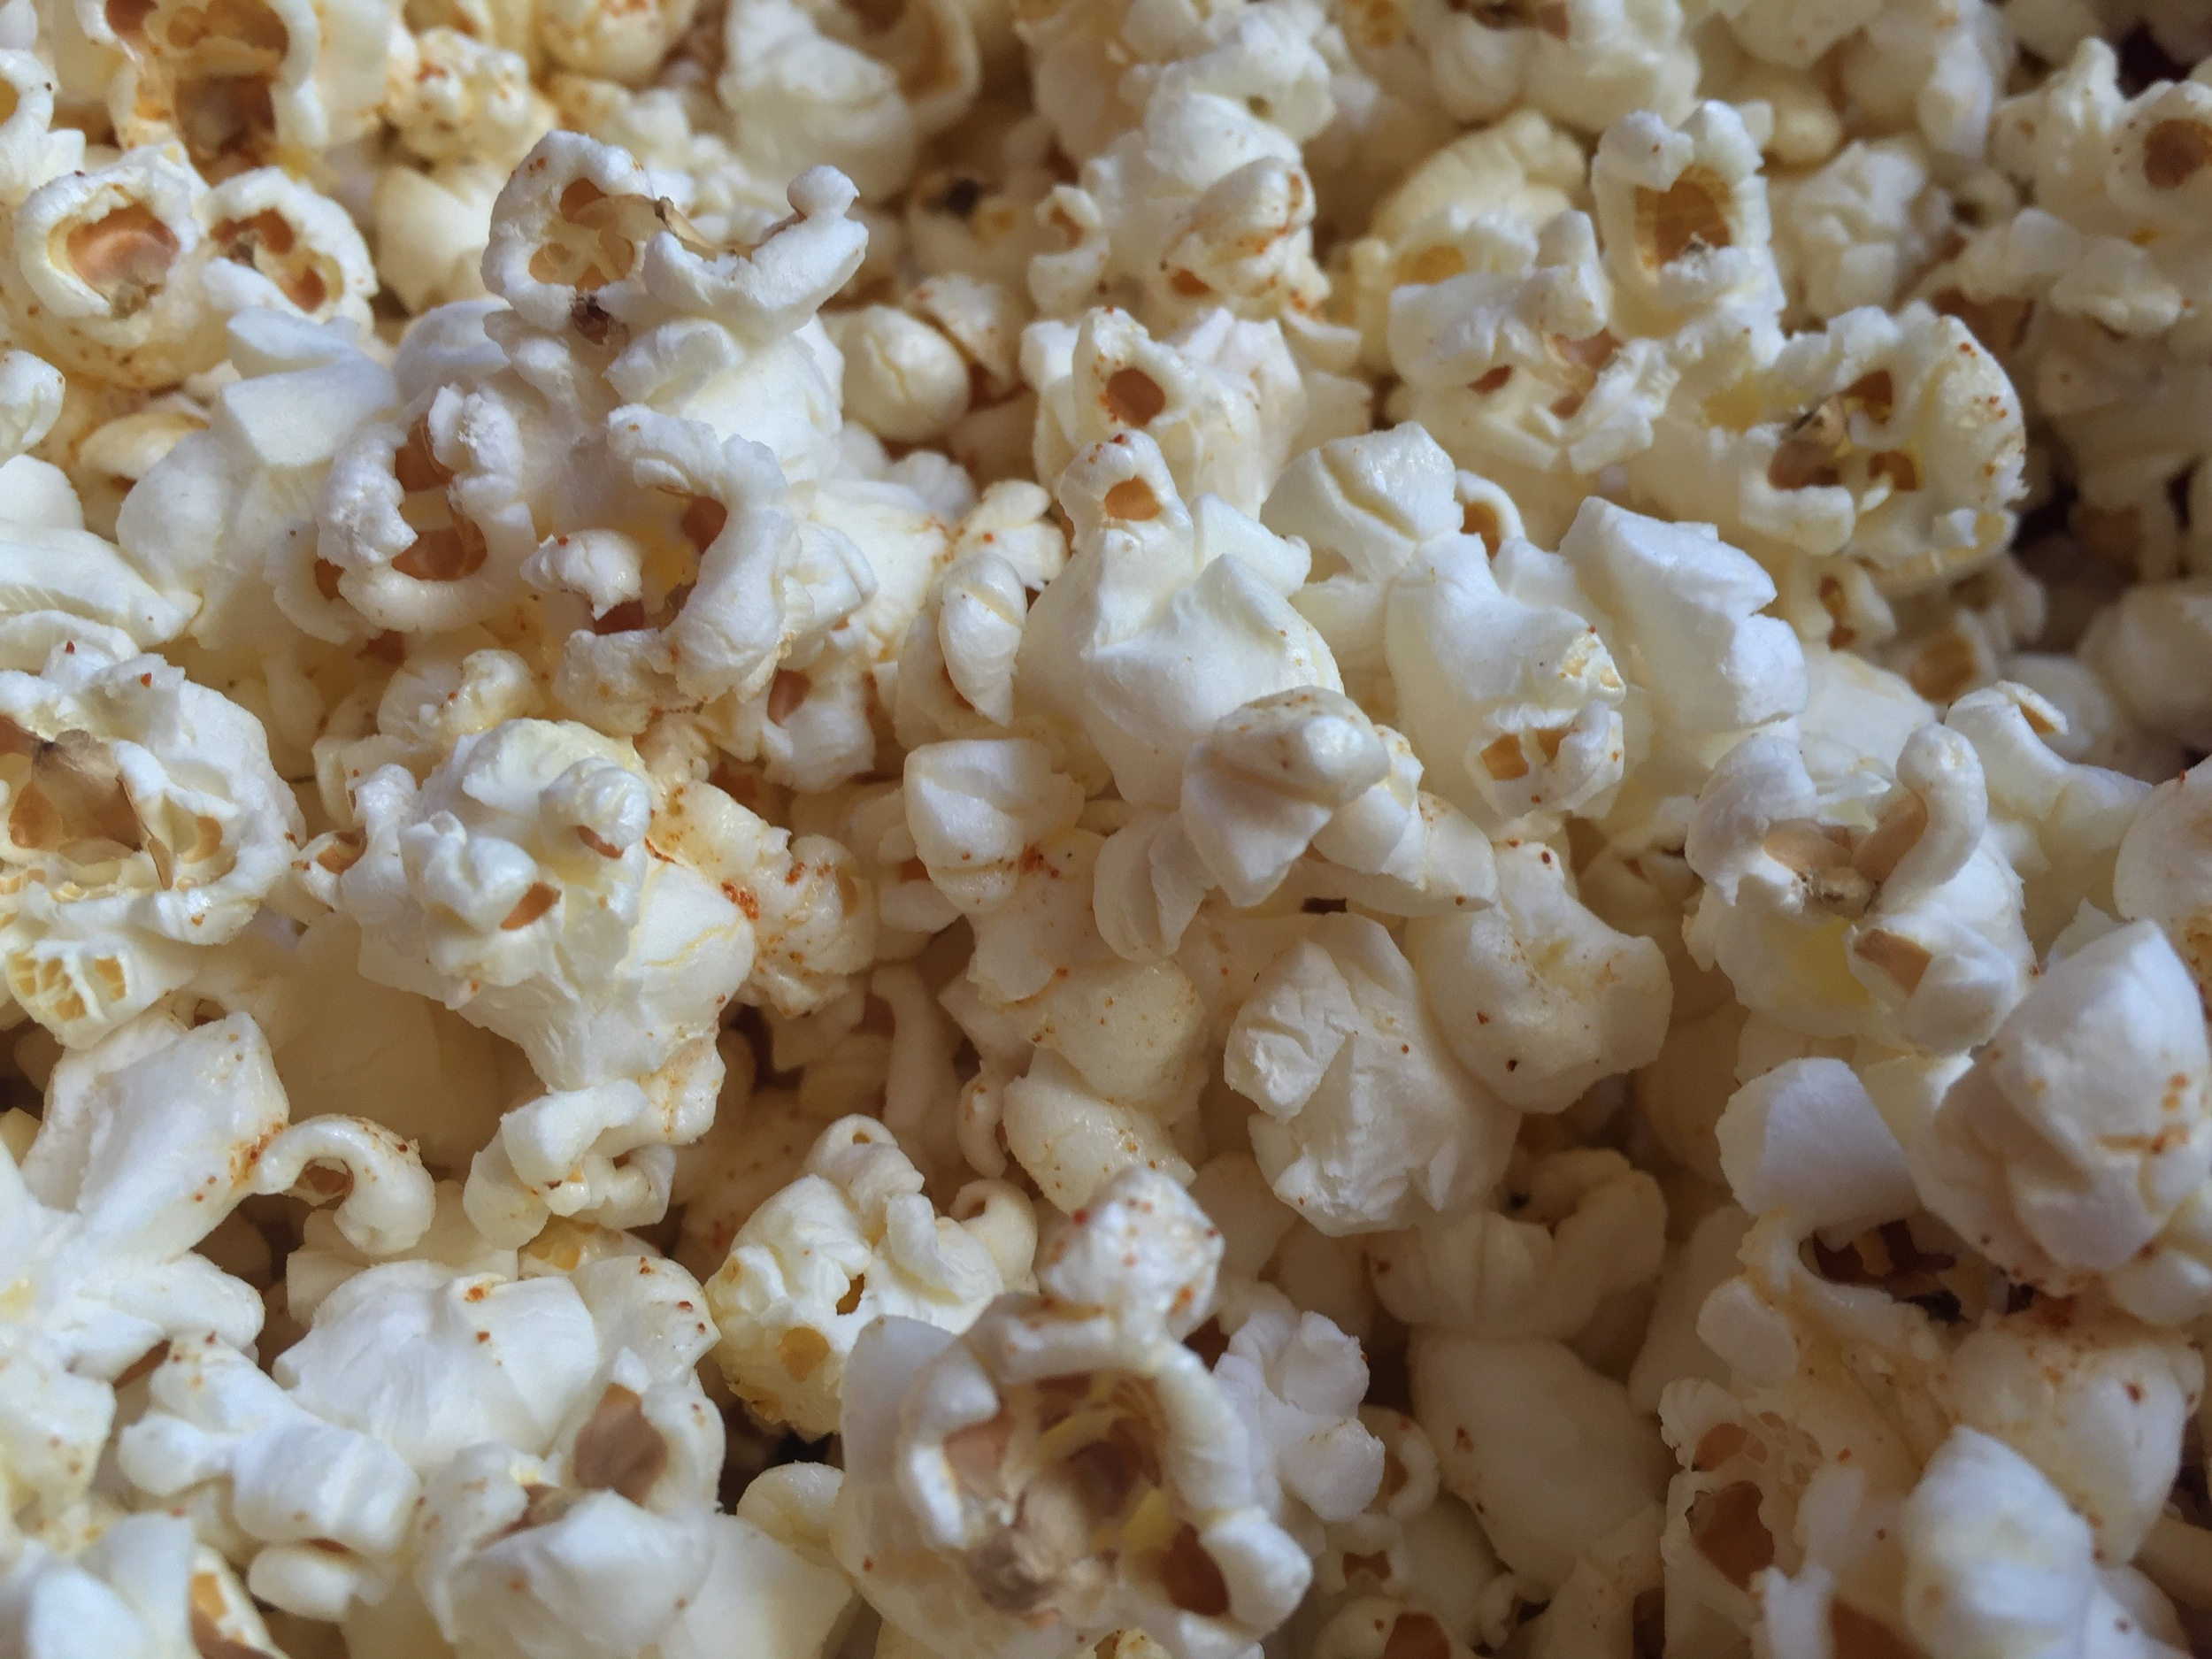 Popcorn! Is there anything better, when that's just what you want?